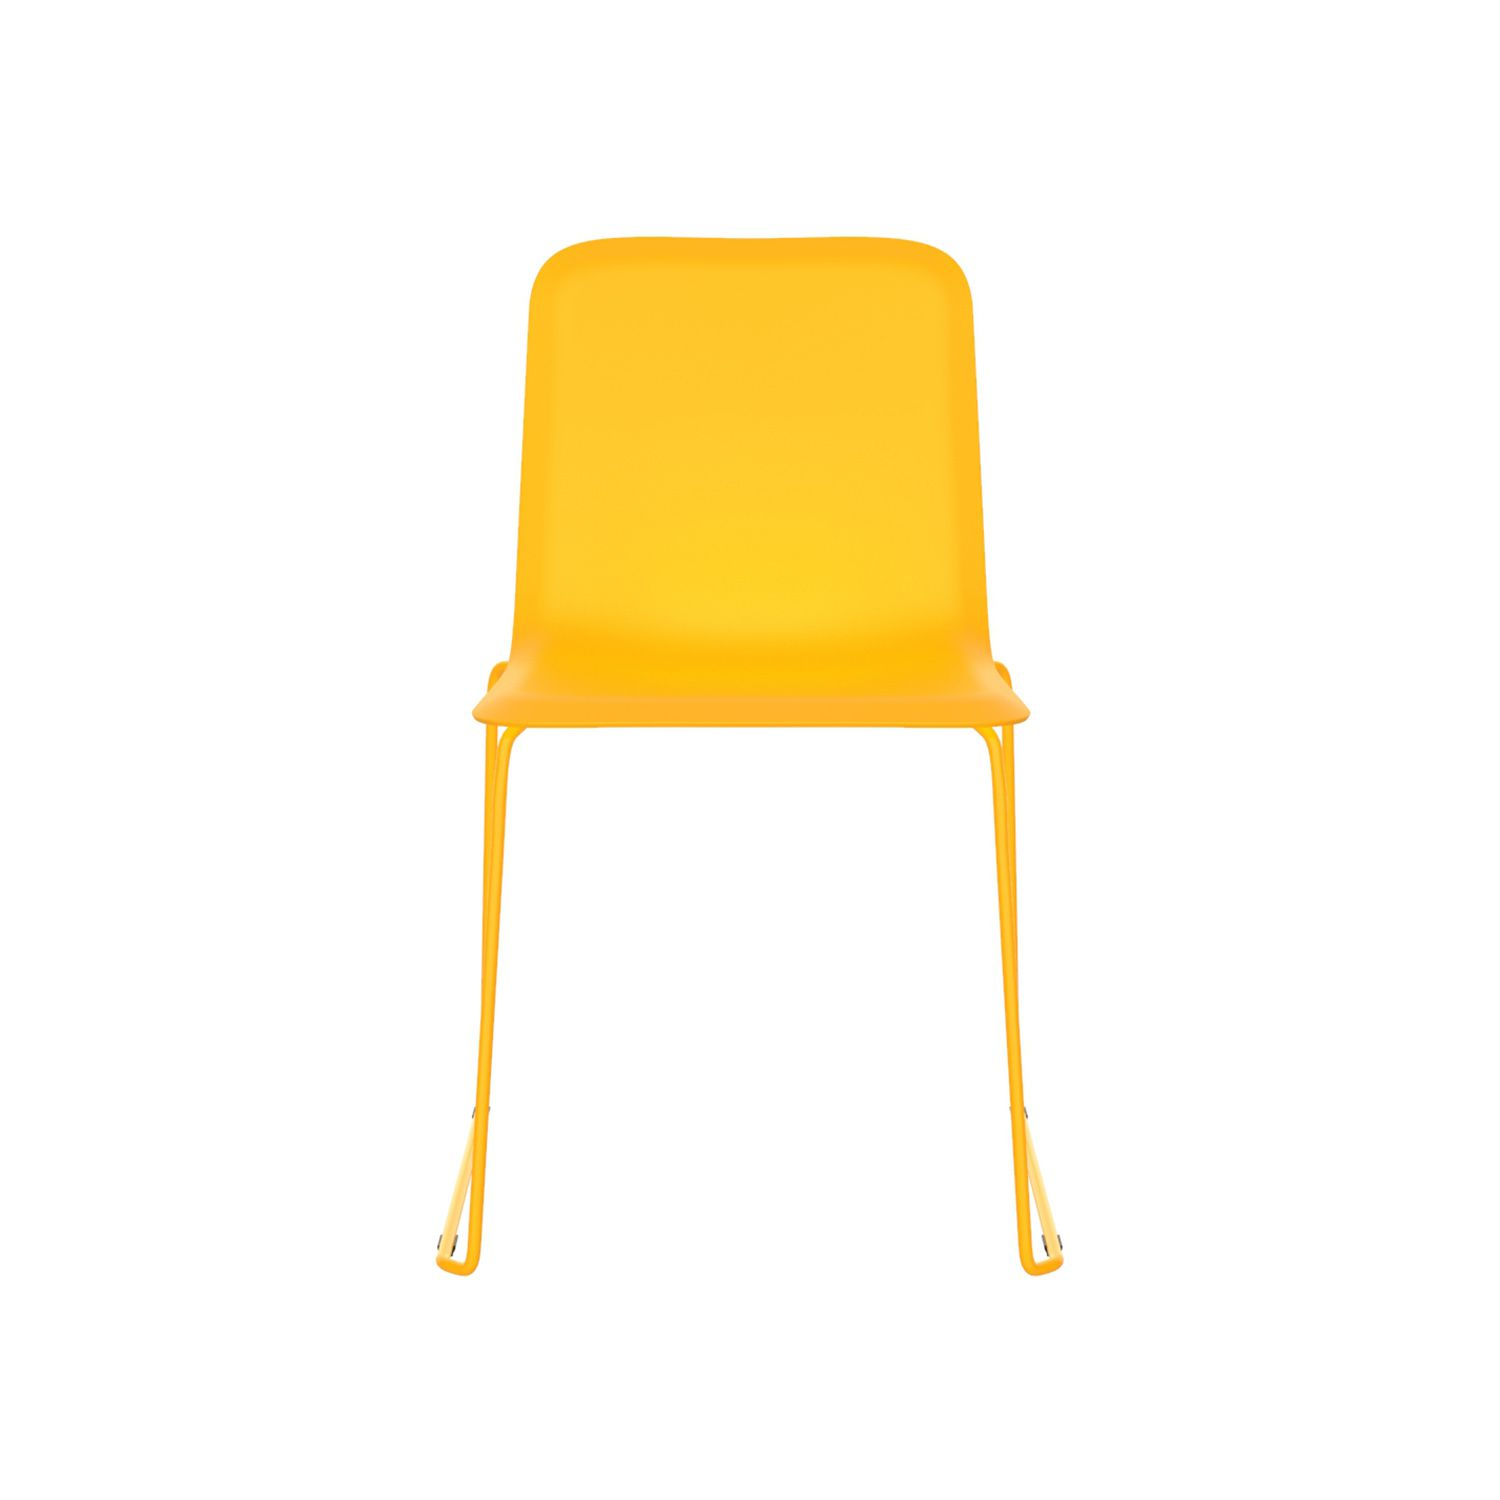 this 141 chair